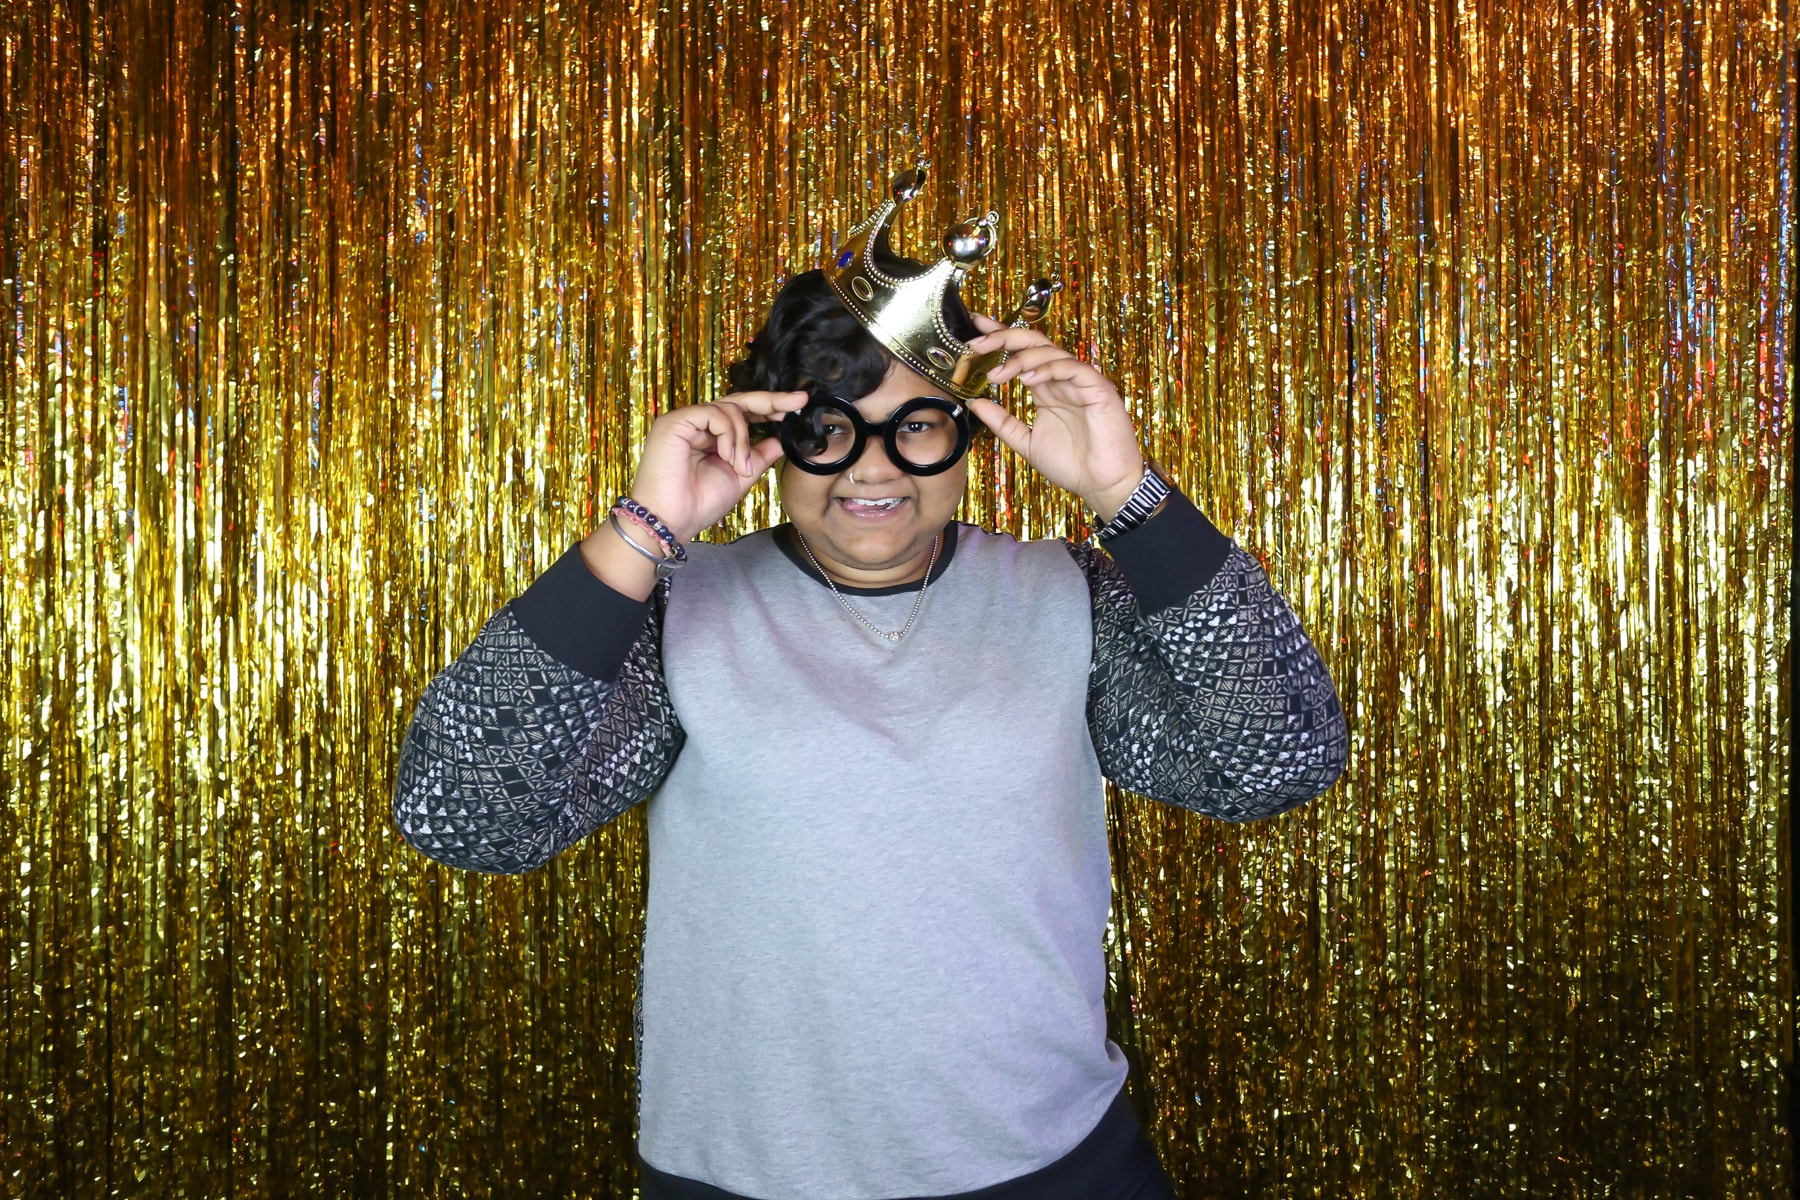 Sushivid+crunch+tagbooth+113